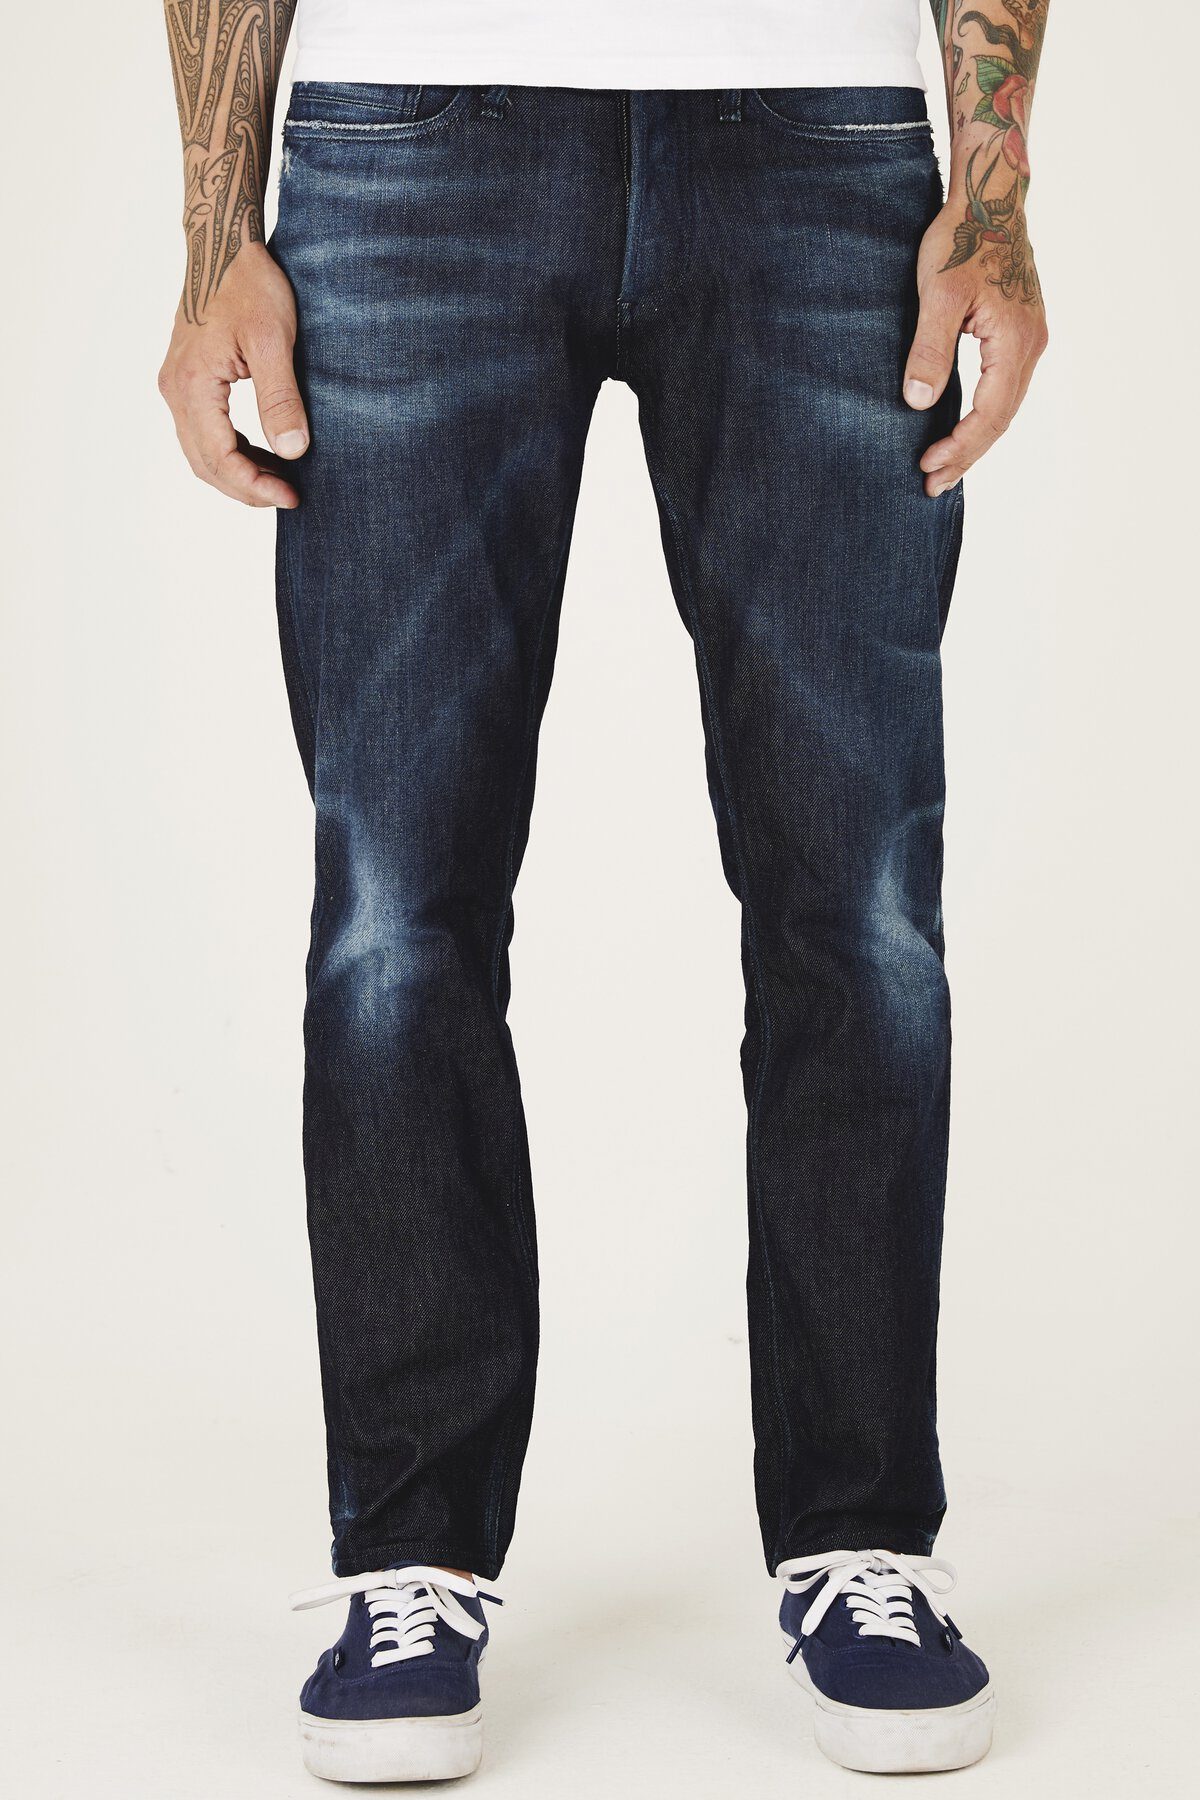 Forge - Relaxed Fit Jeans - Front